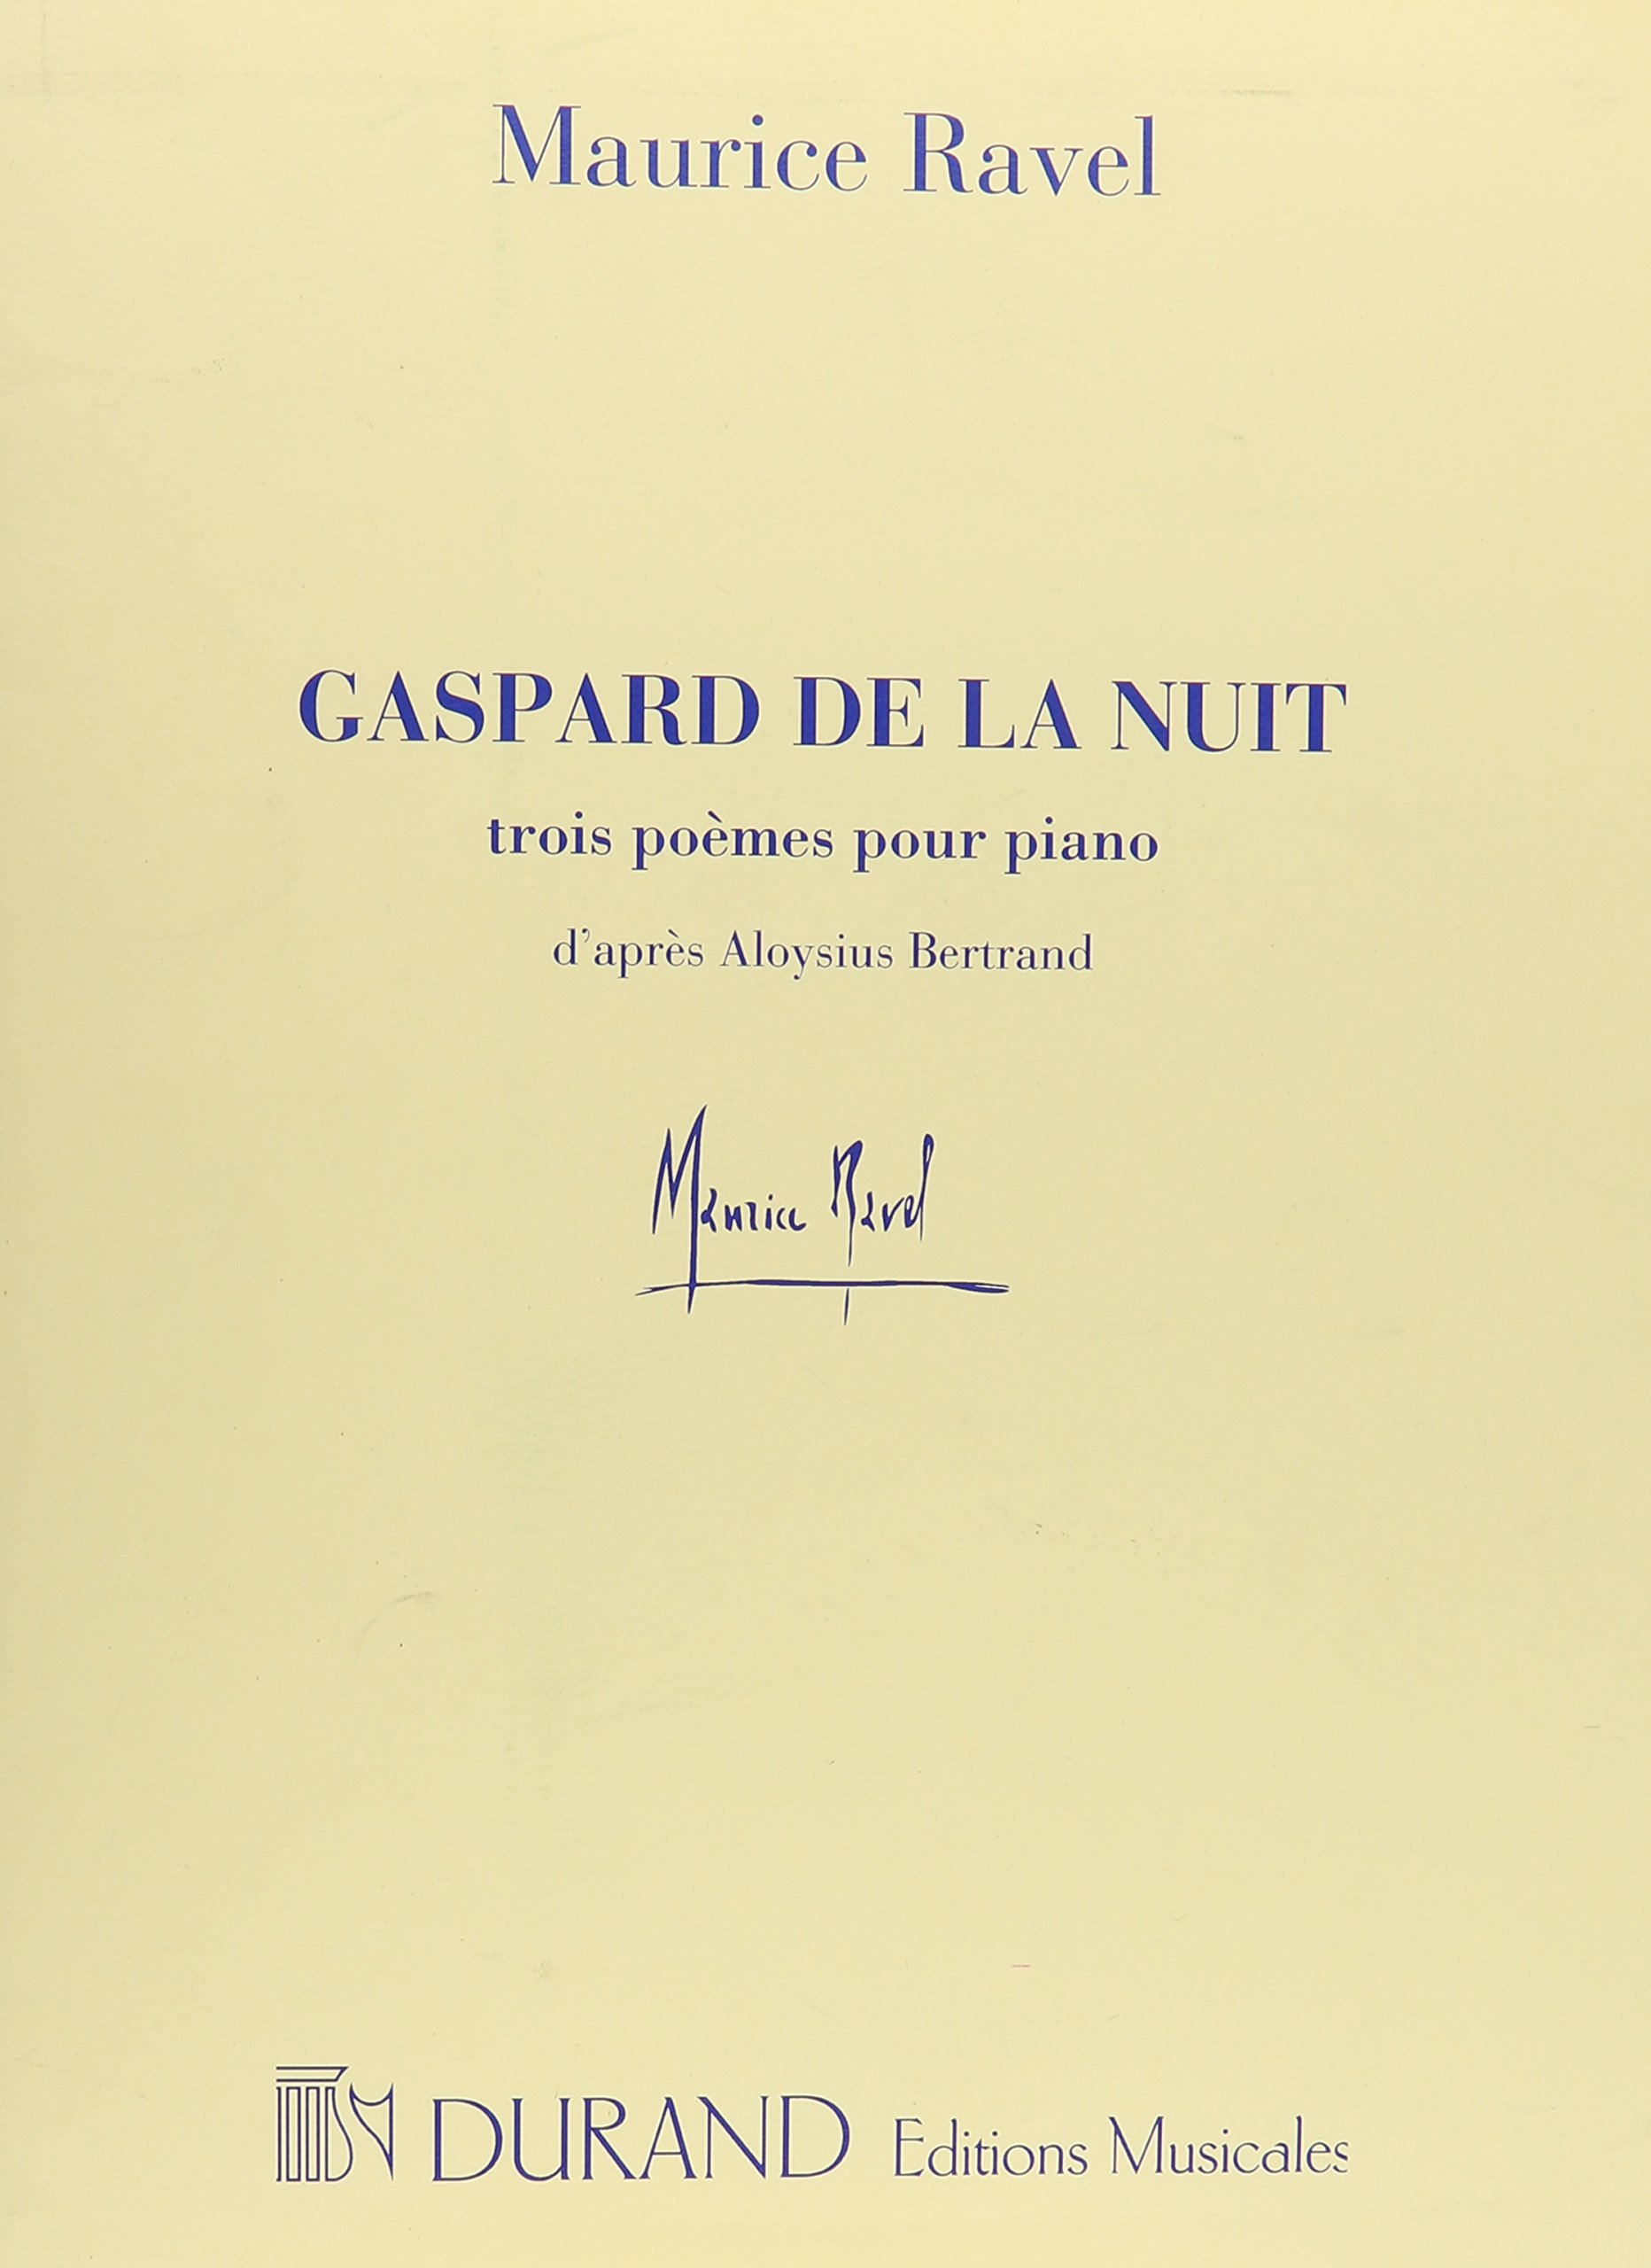 Download Gaspard De La Nuit: 3 Poemes Pour Piano pdf epub